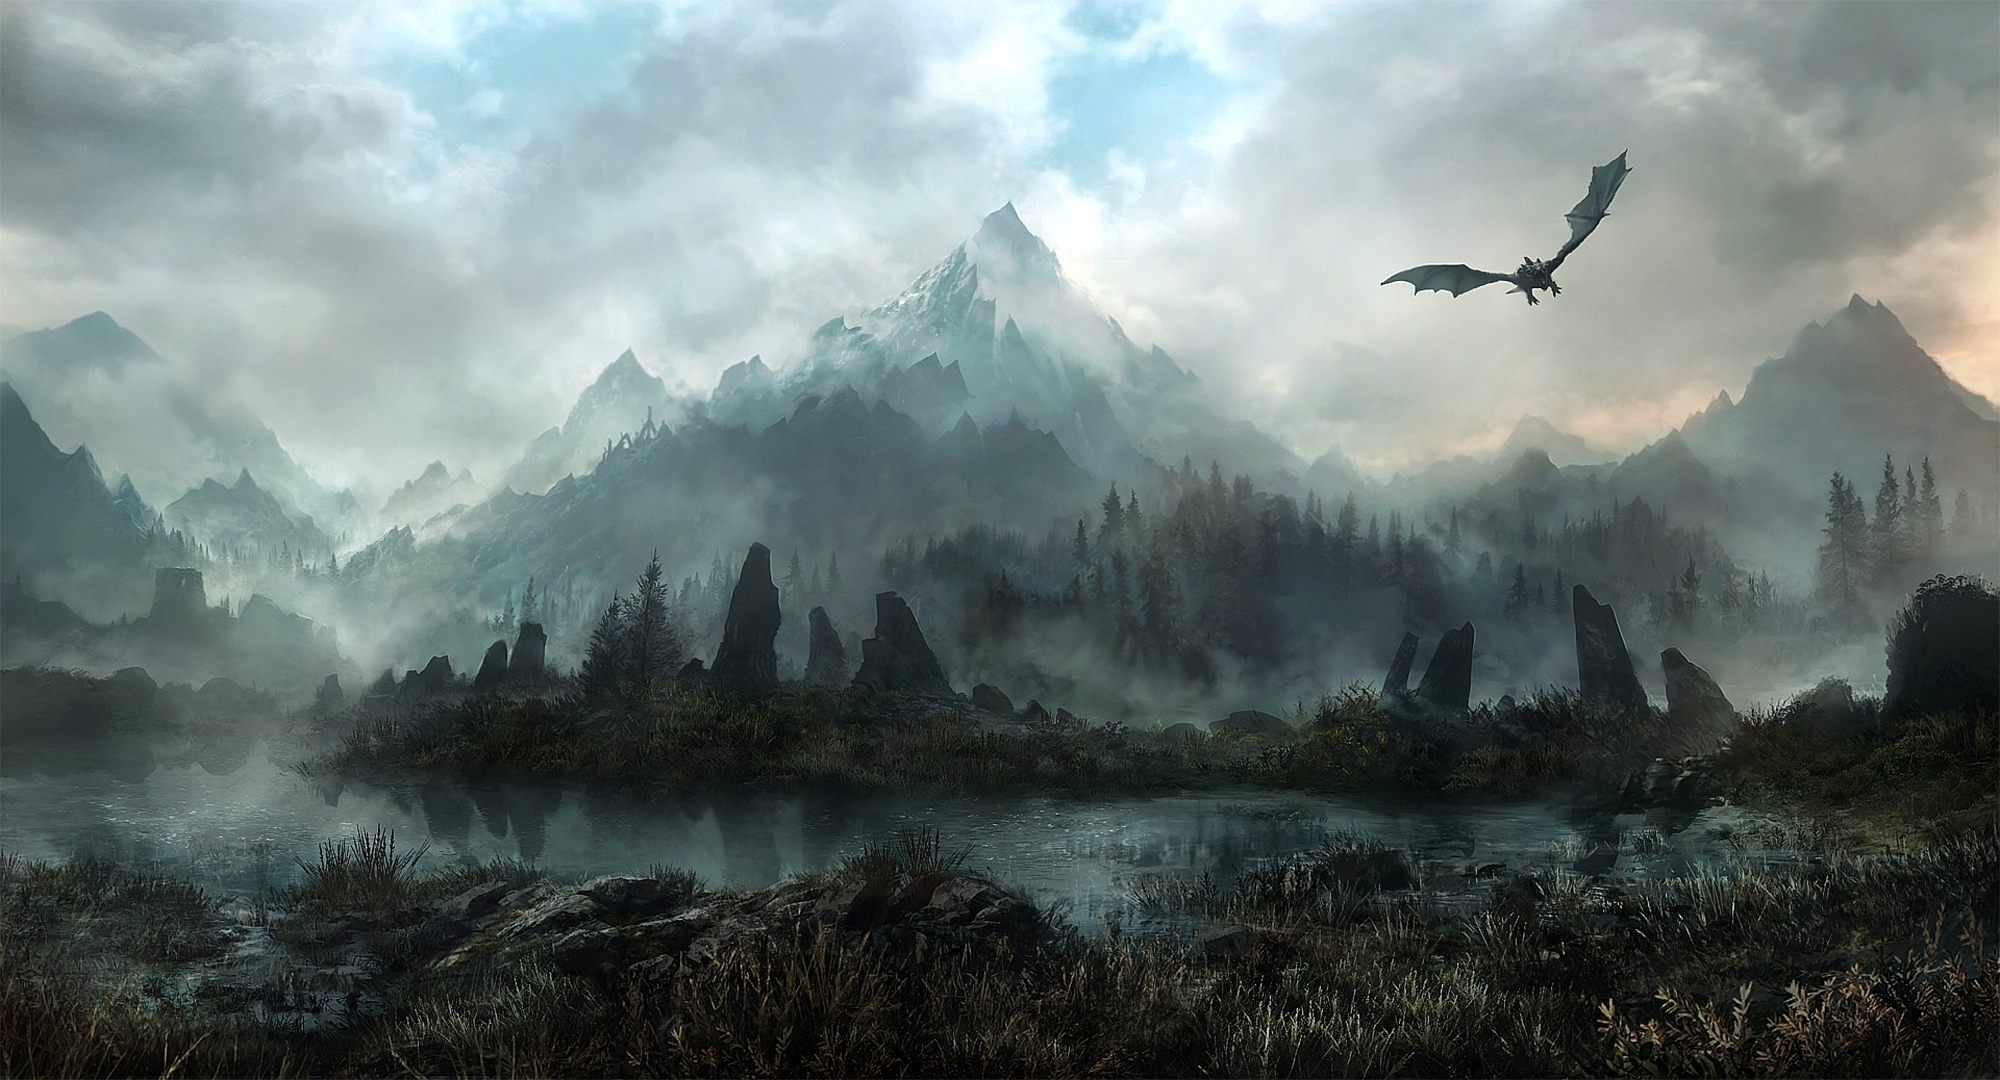 landscapes elder scrolls skyrim fantasy dragons flight mountains sky